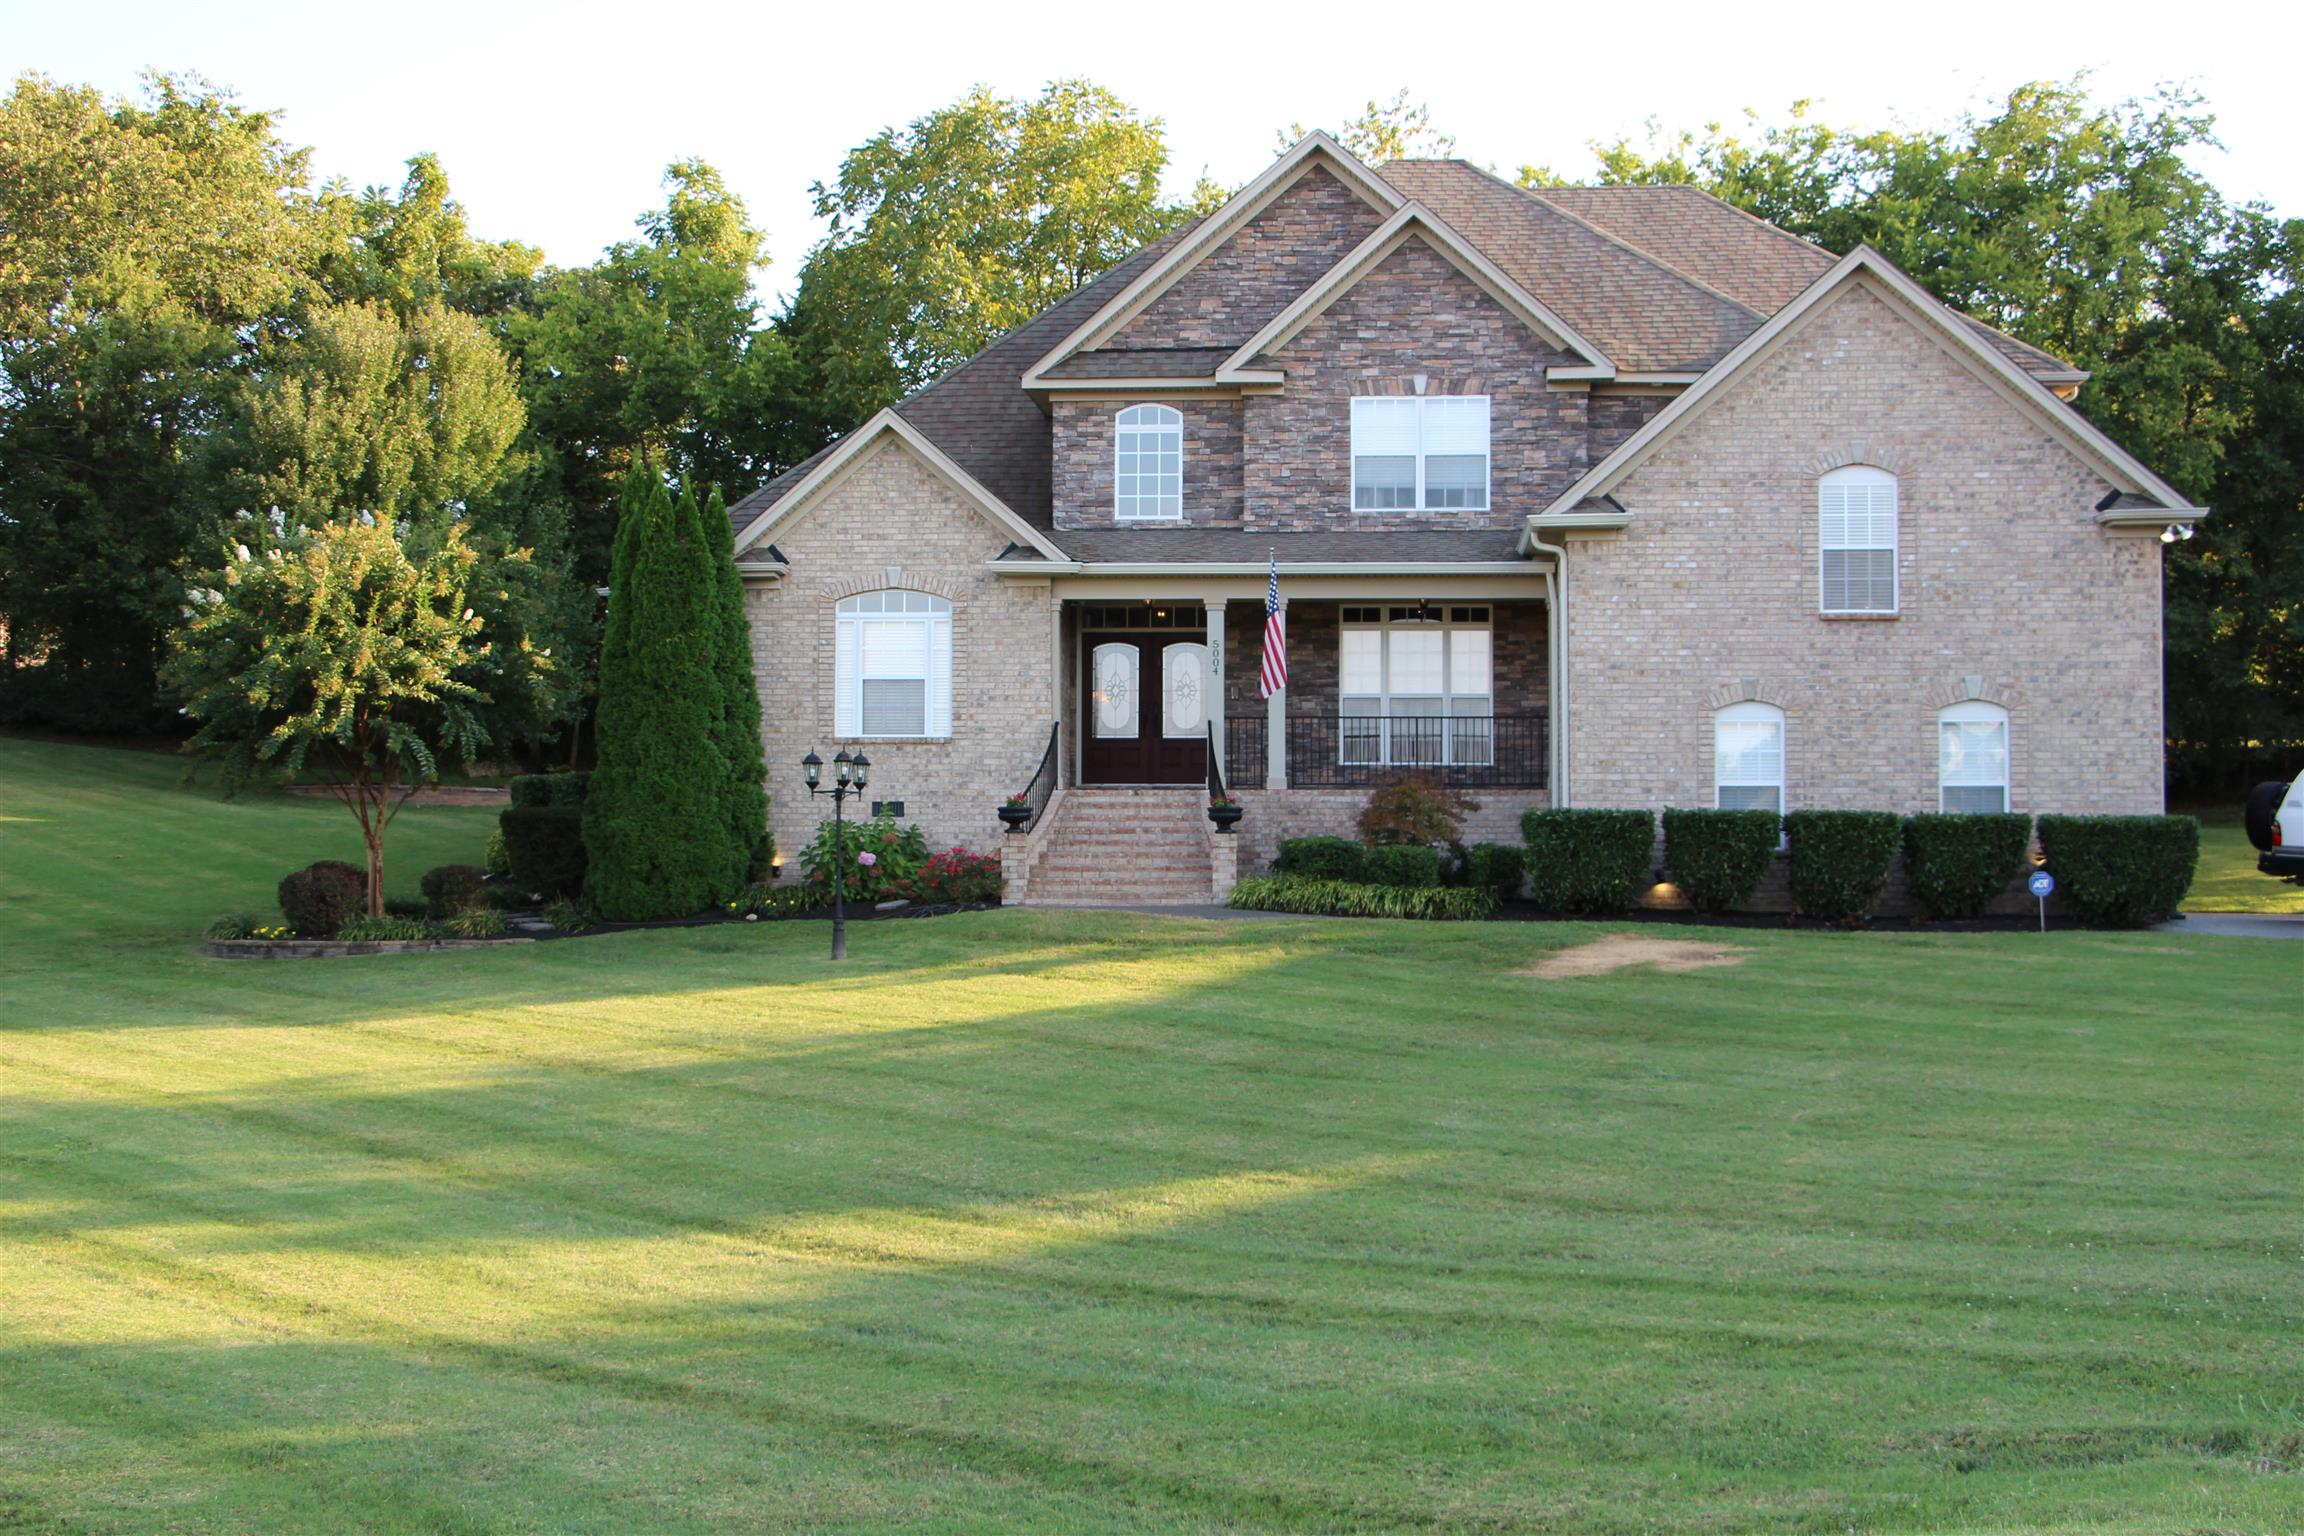 5004 Magnolia Estates Blvd, Mount Juliet, TN 37122 - Mount Juliet, TN real estate listing